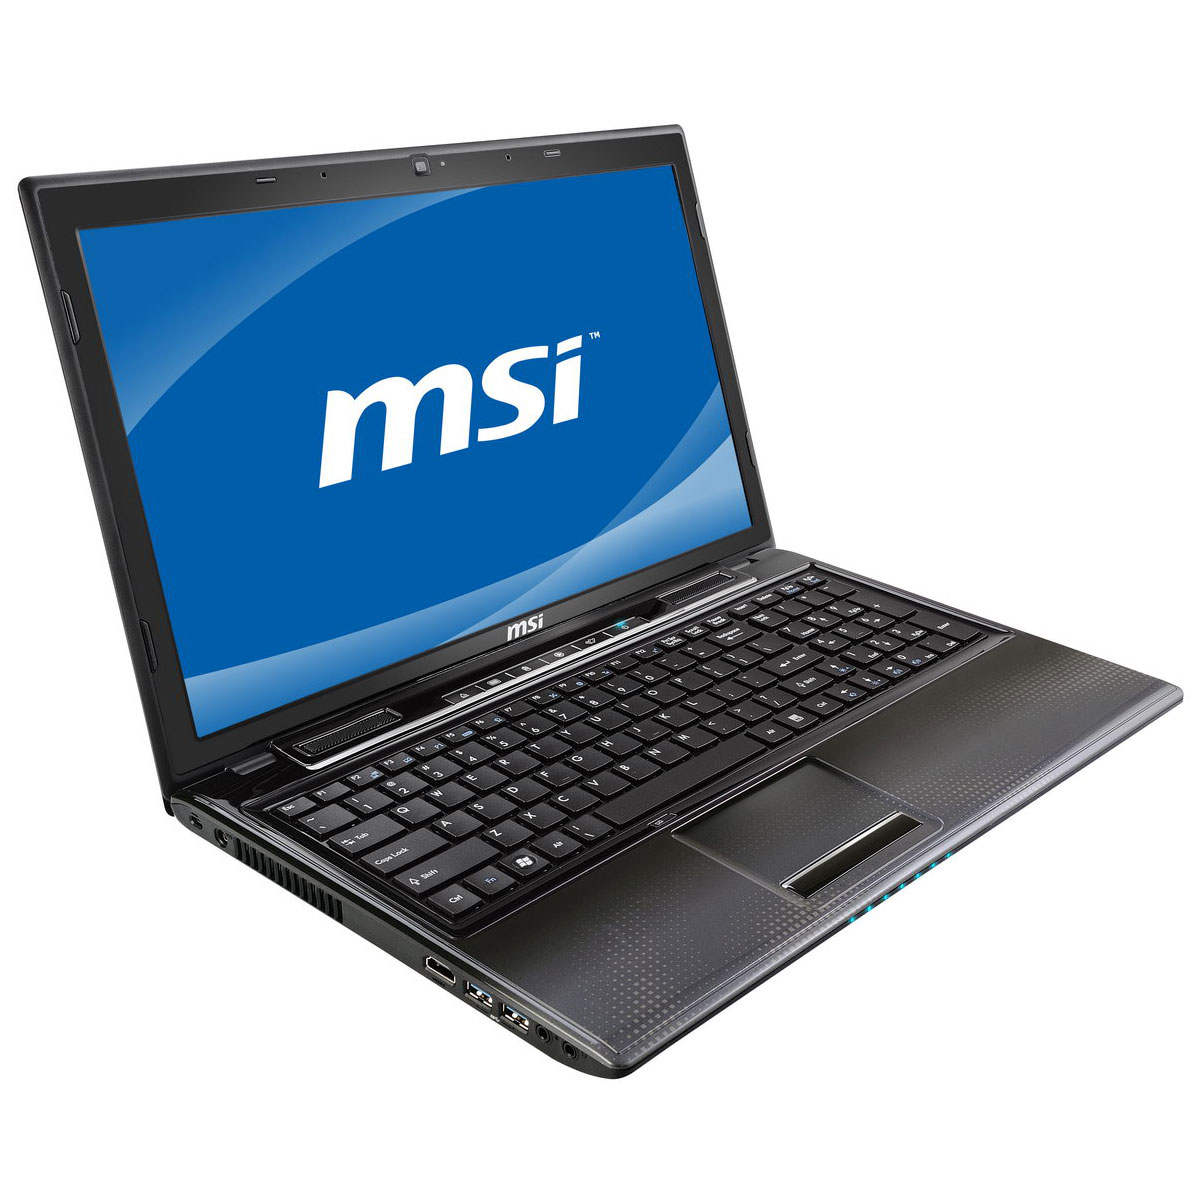 msi cr650 604fr pc portable msi sur ldlc. Black Bedroom Furniture Sets. Home Design Ideas